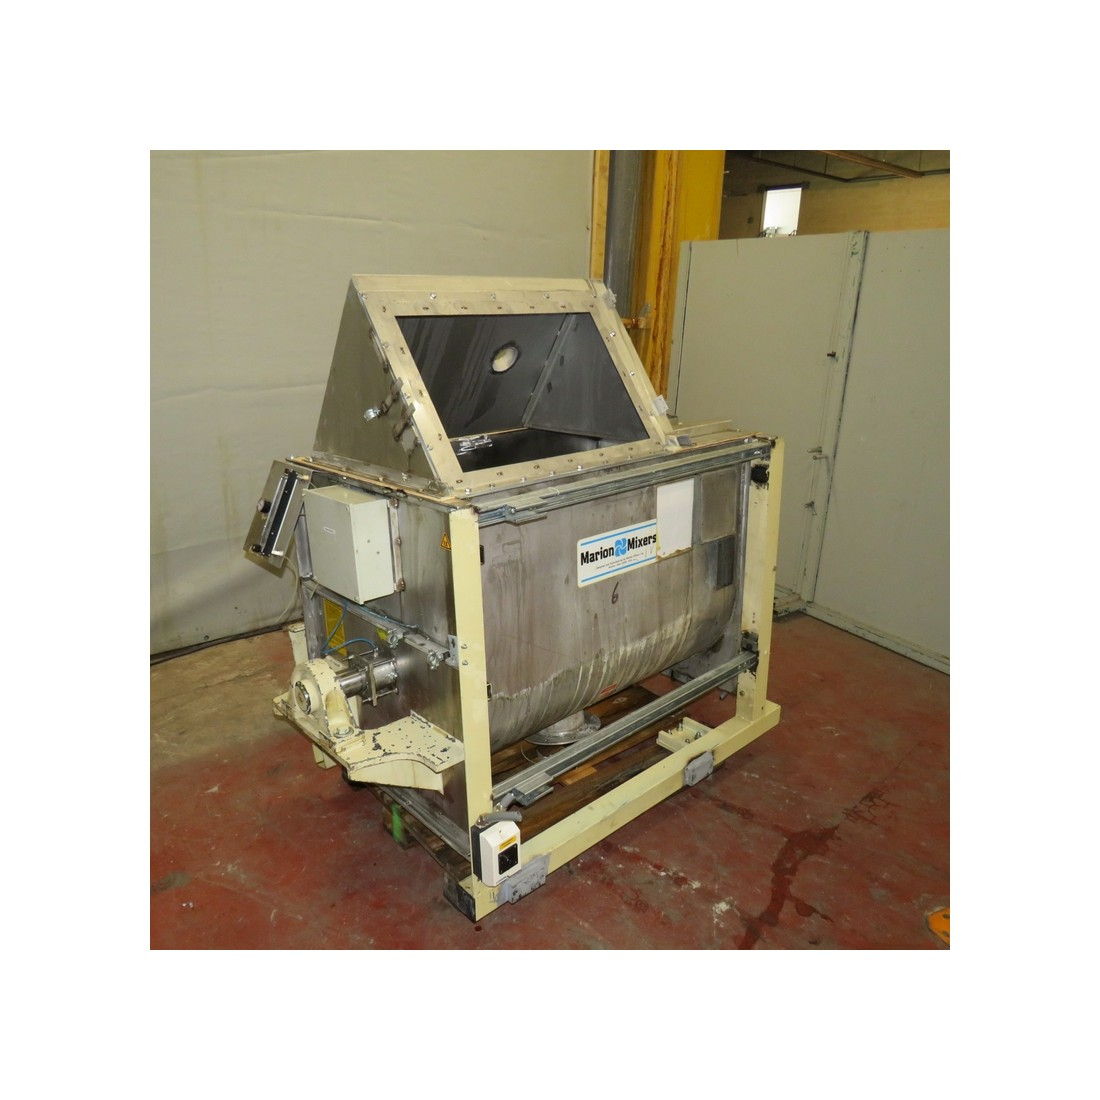 MARION MIXERS - Paddle mixer - R6ME6371 - Stainless steel paddle mixer 430 liters